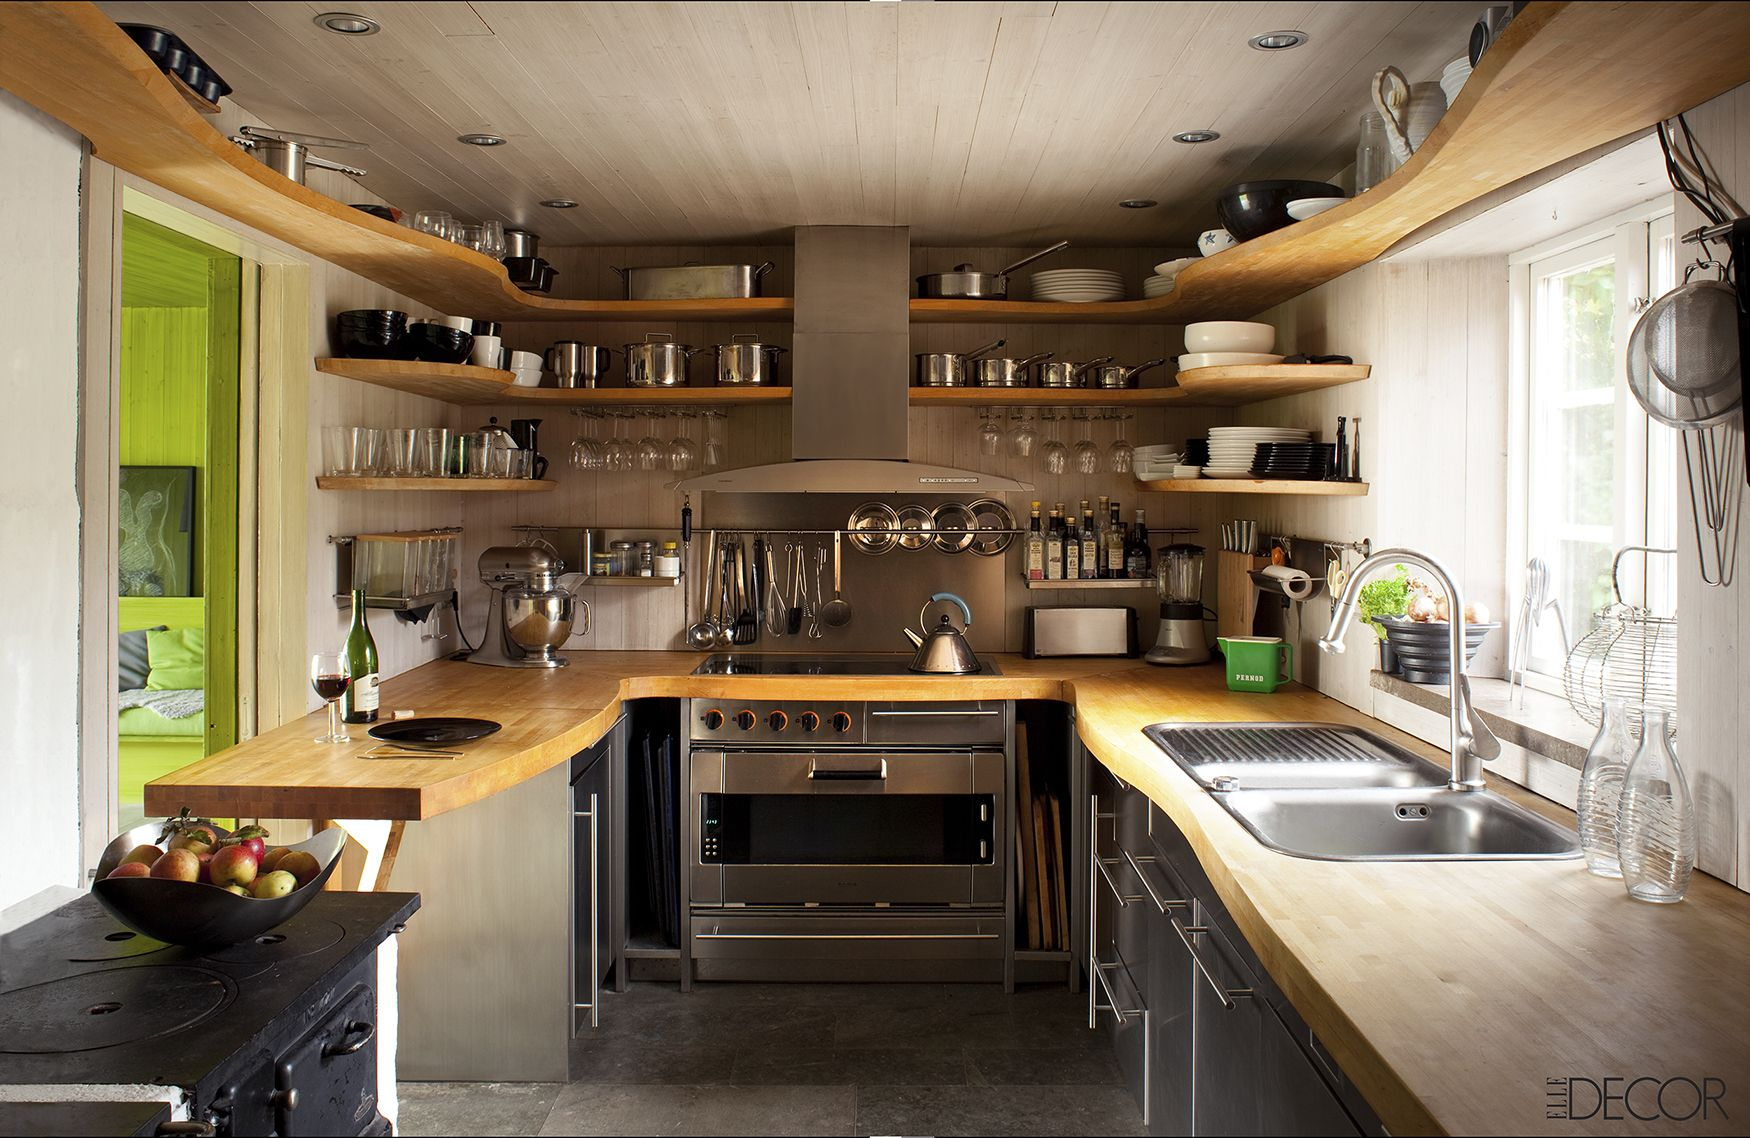 Ideas For Small Kitchens 50 small kitchen design ideas - decorating tiny kitchens